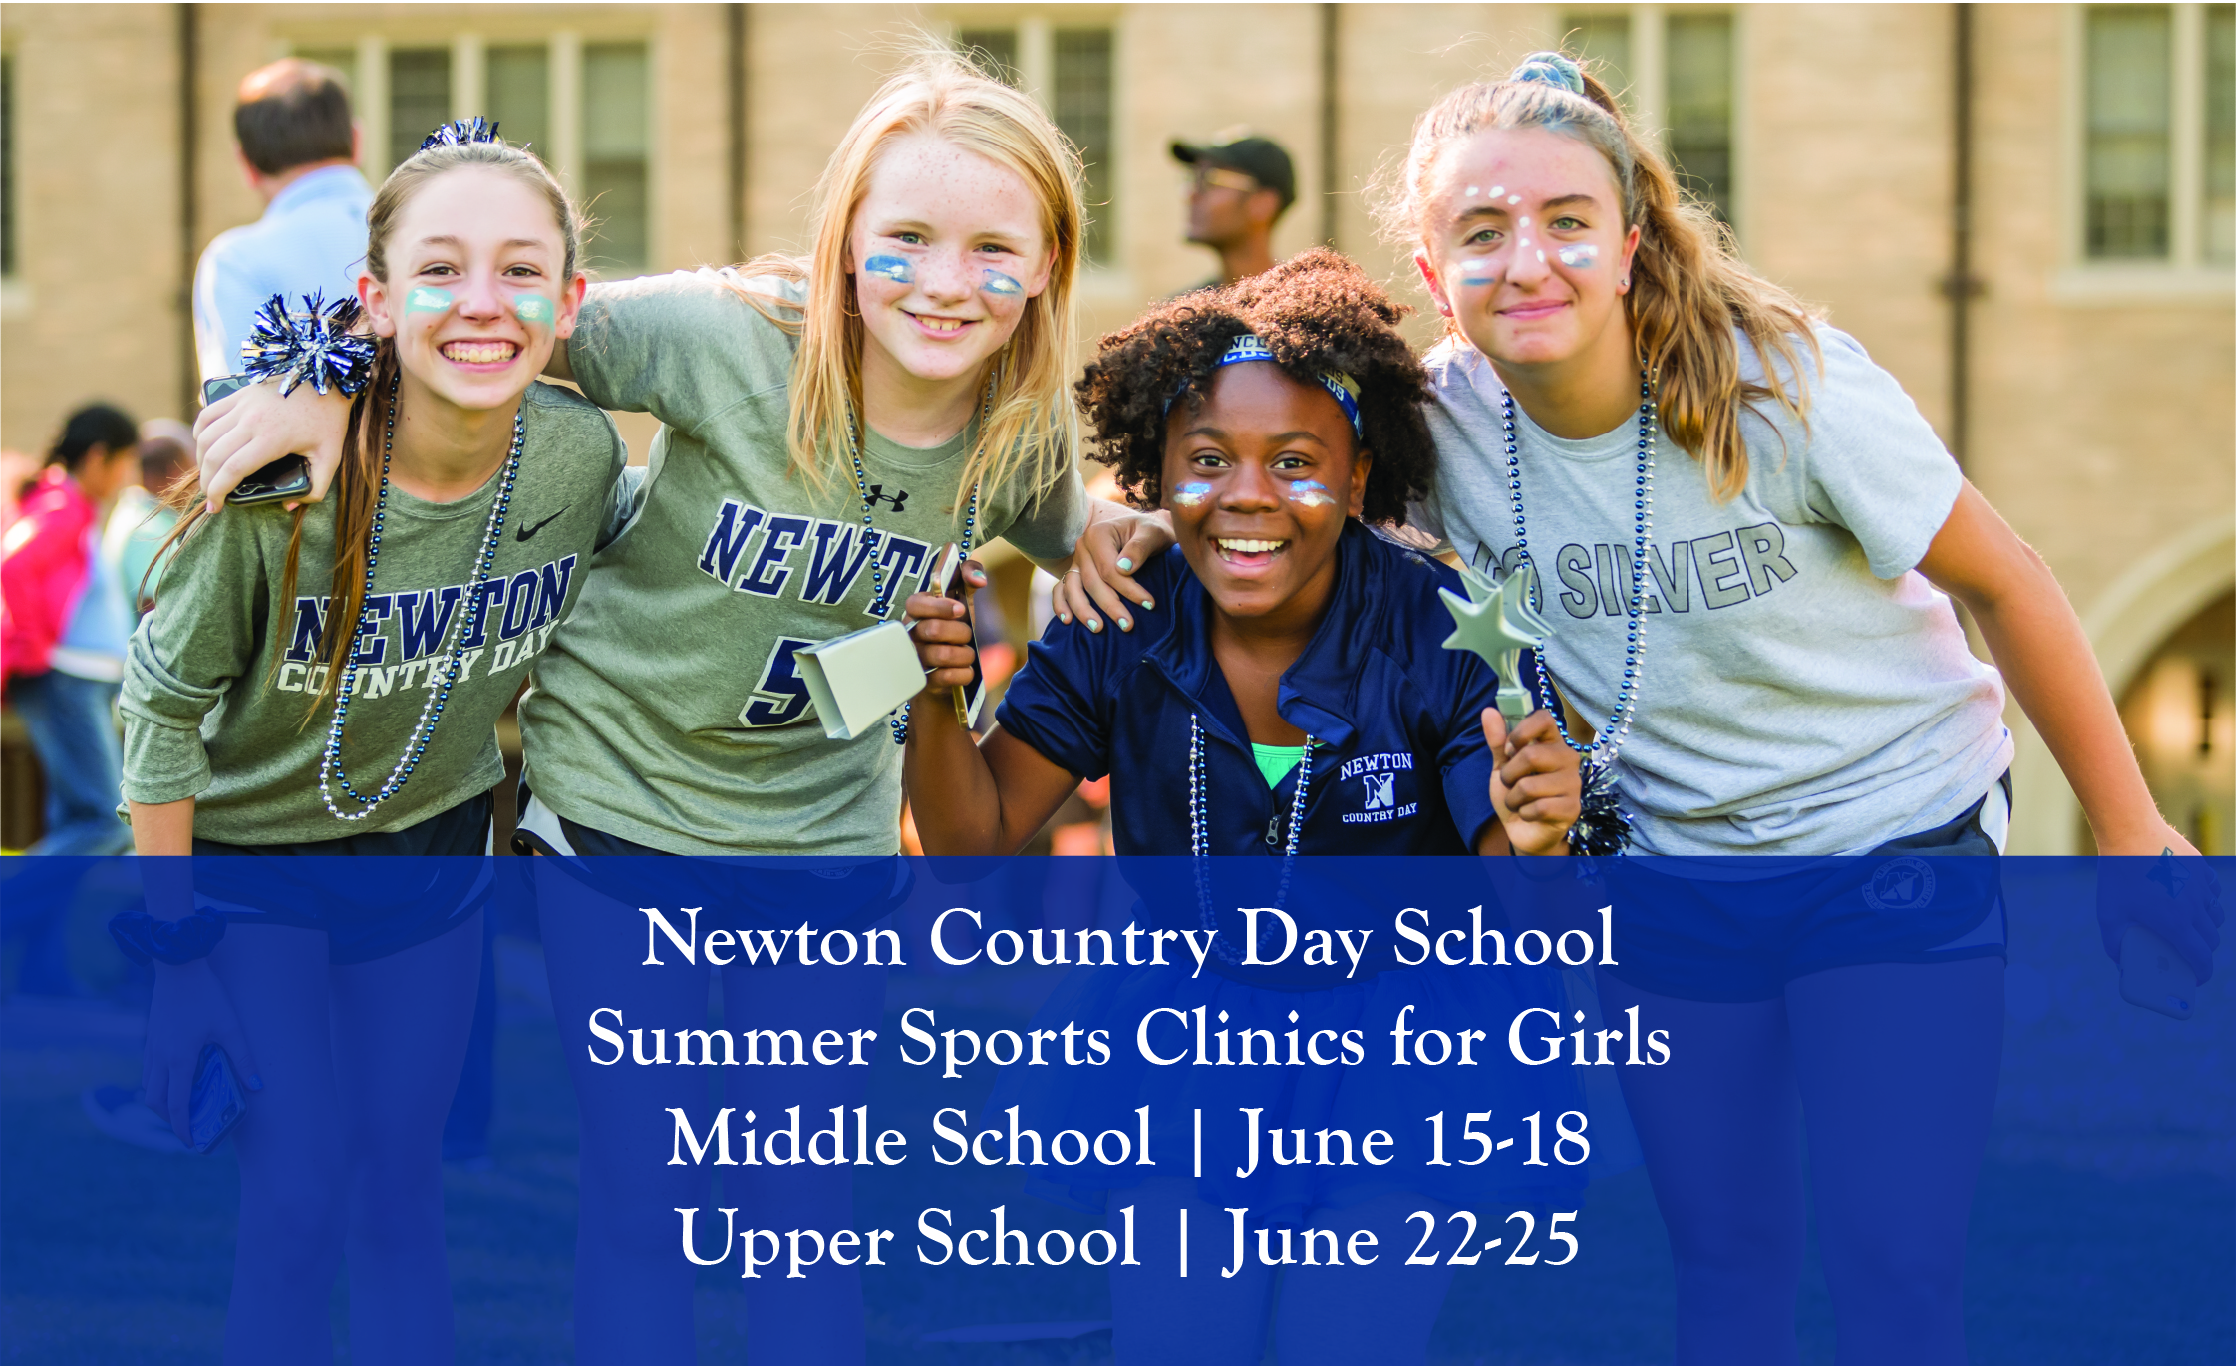 Register Today for Summer Sports Clinics